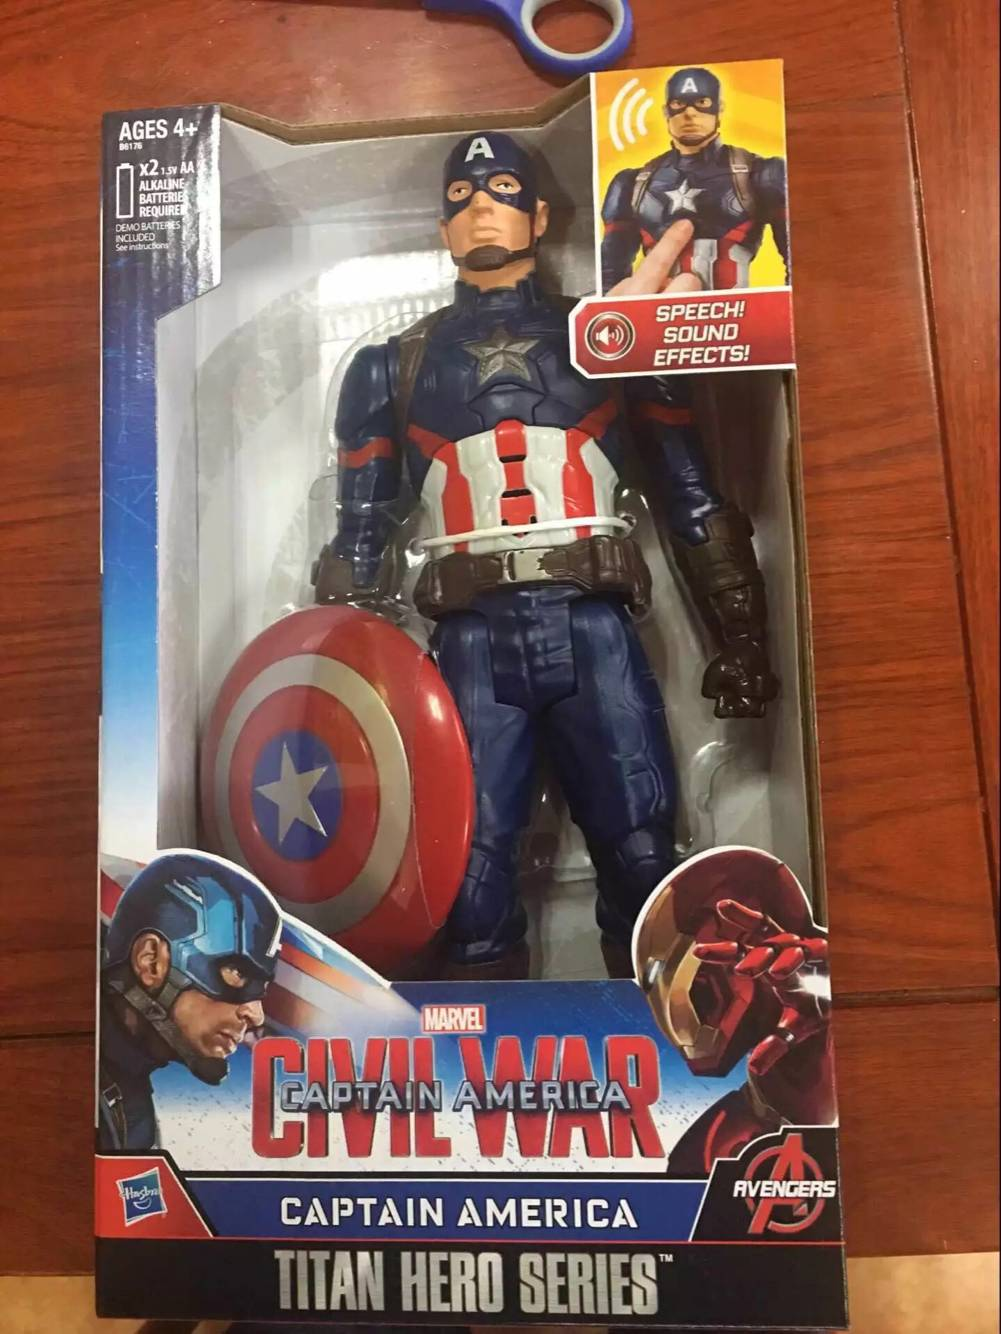 Customized action figure toys Captain America